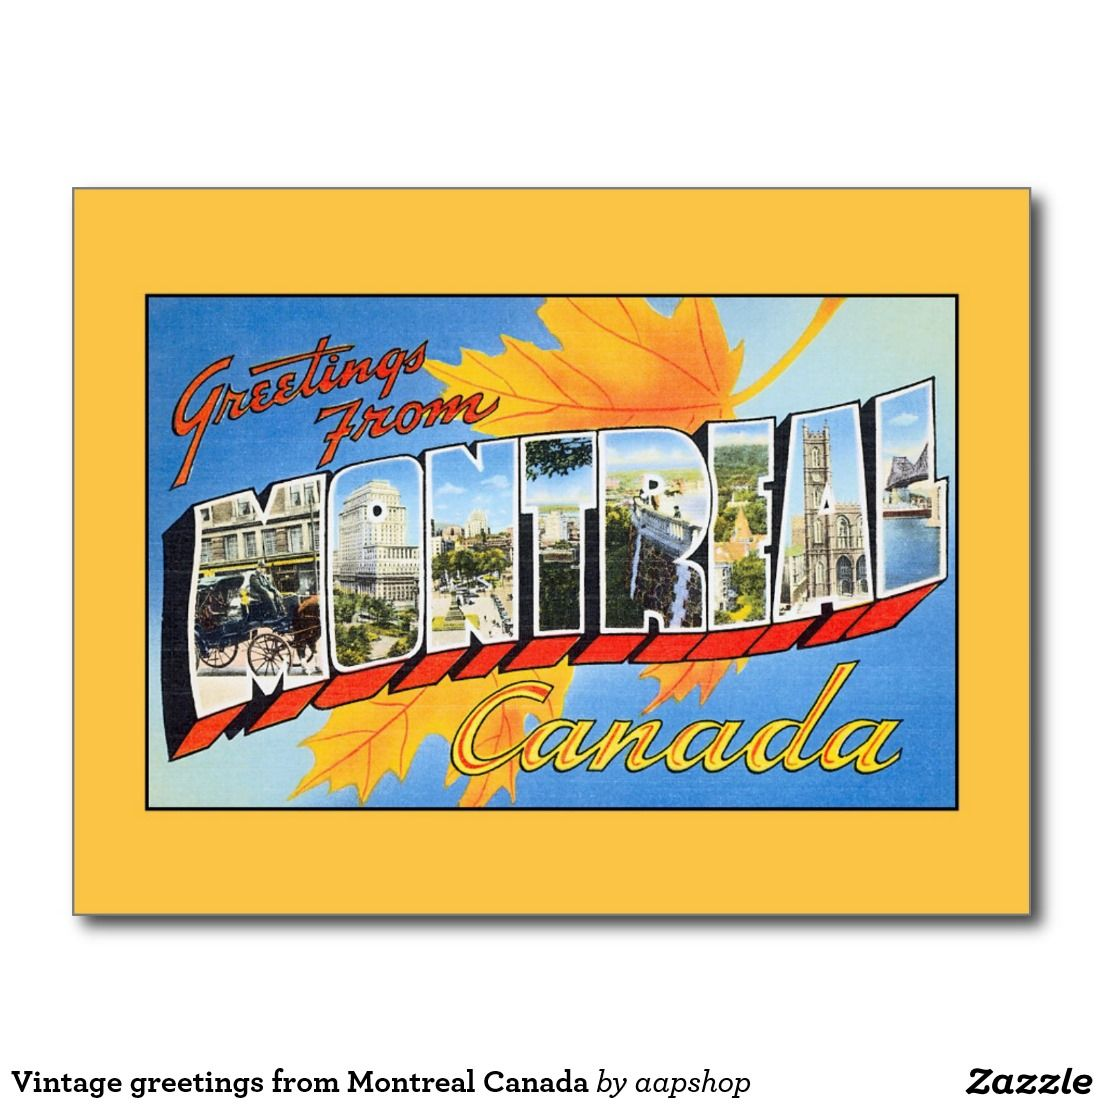 Greetings from the Seaside Poster reproduction. Vintage postcard design